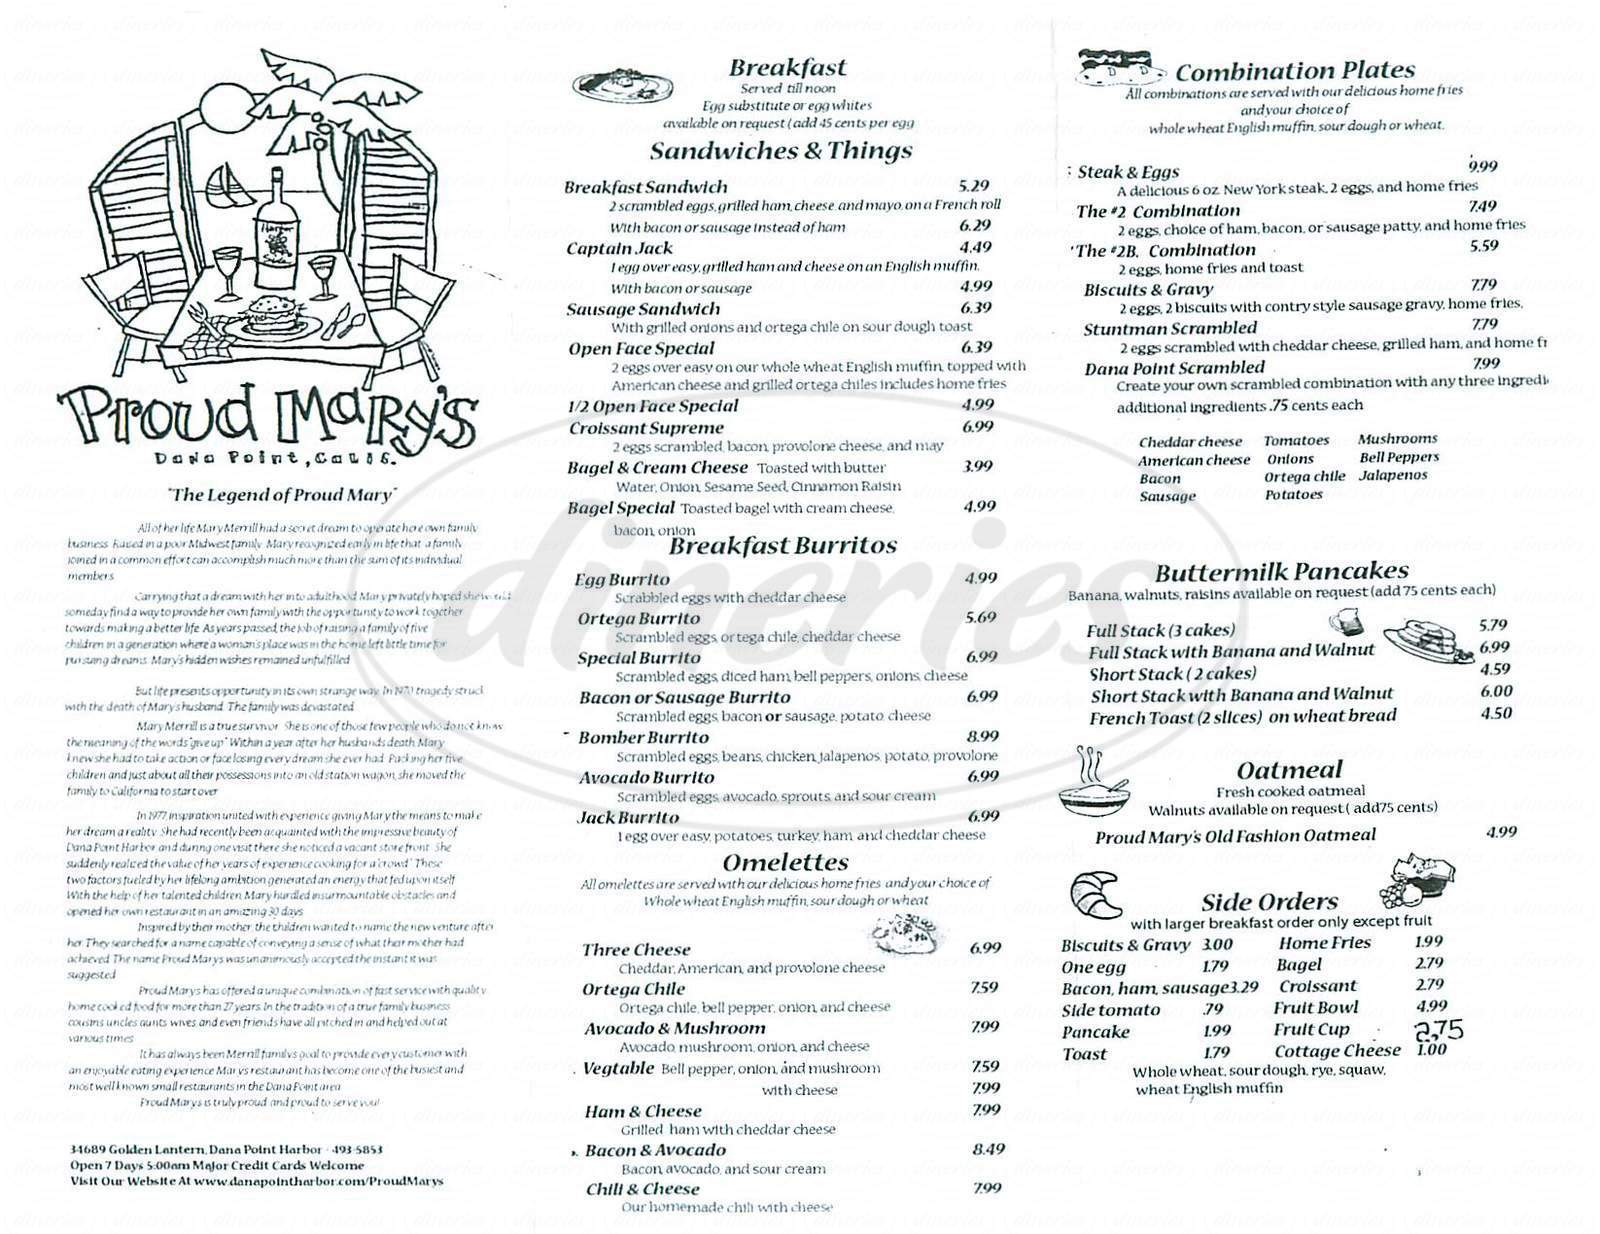 menu for Proud Mary's